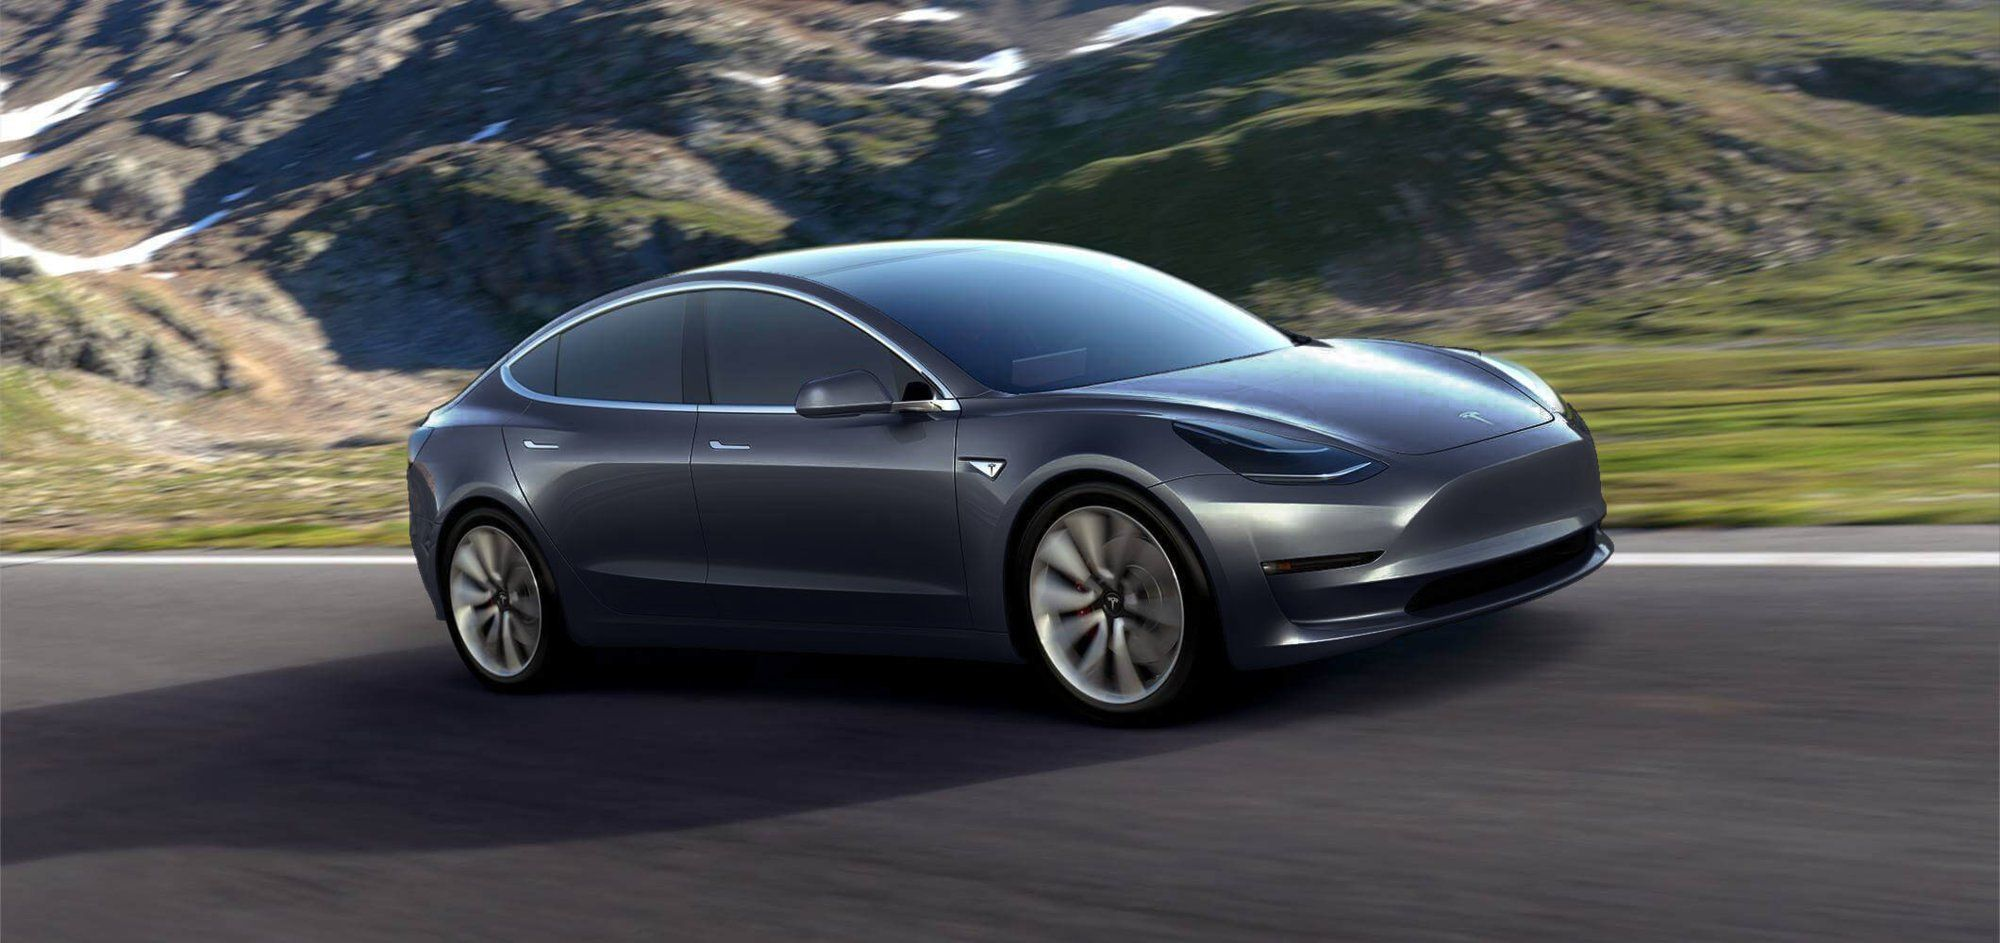 Tesla unveiled the Model 3 last week and displayed a several prototypes in a select few custom colors. The company also released some promo shots with differentpaint jobs, and there's a bunch....